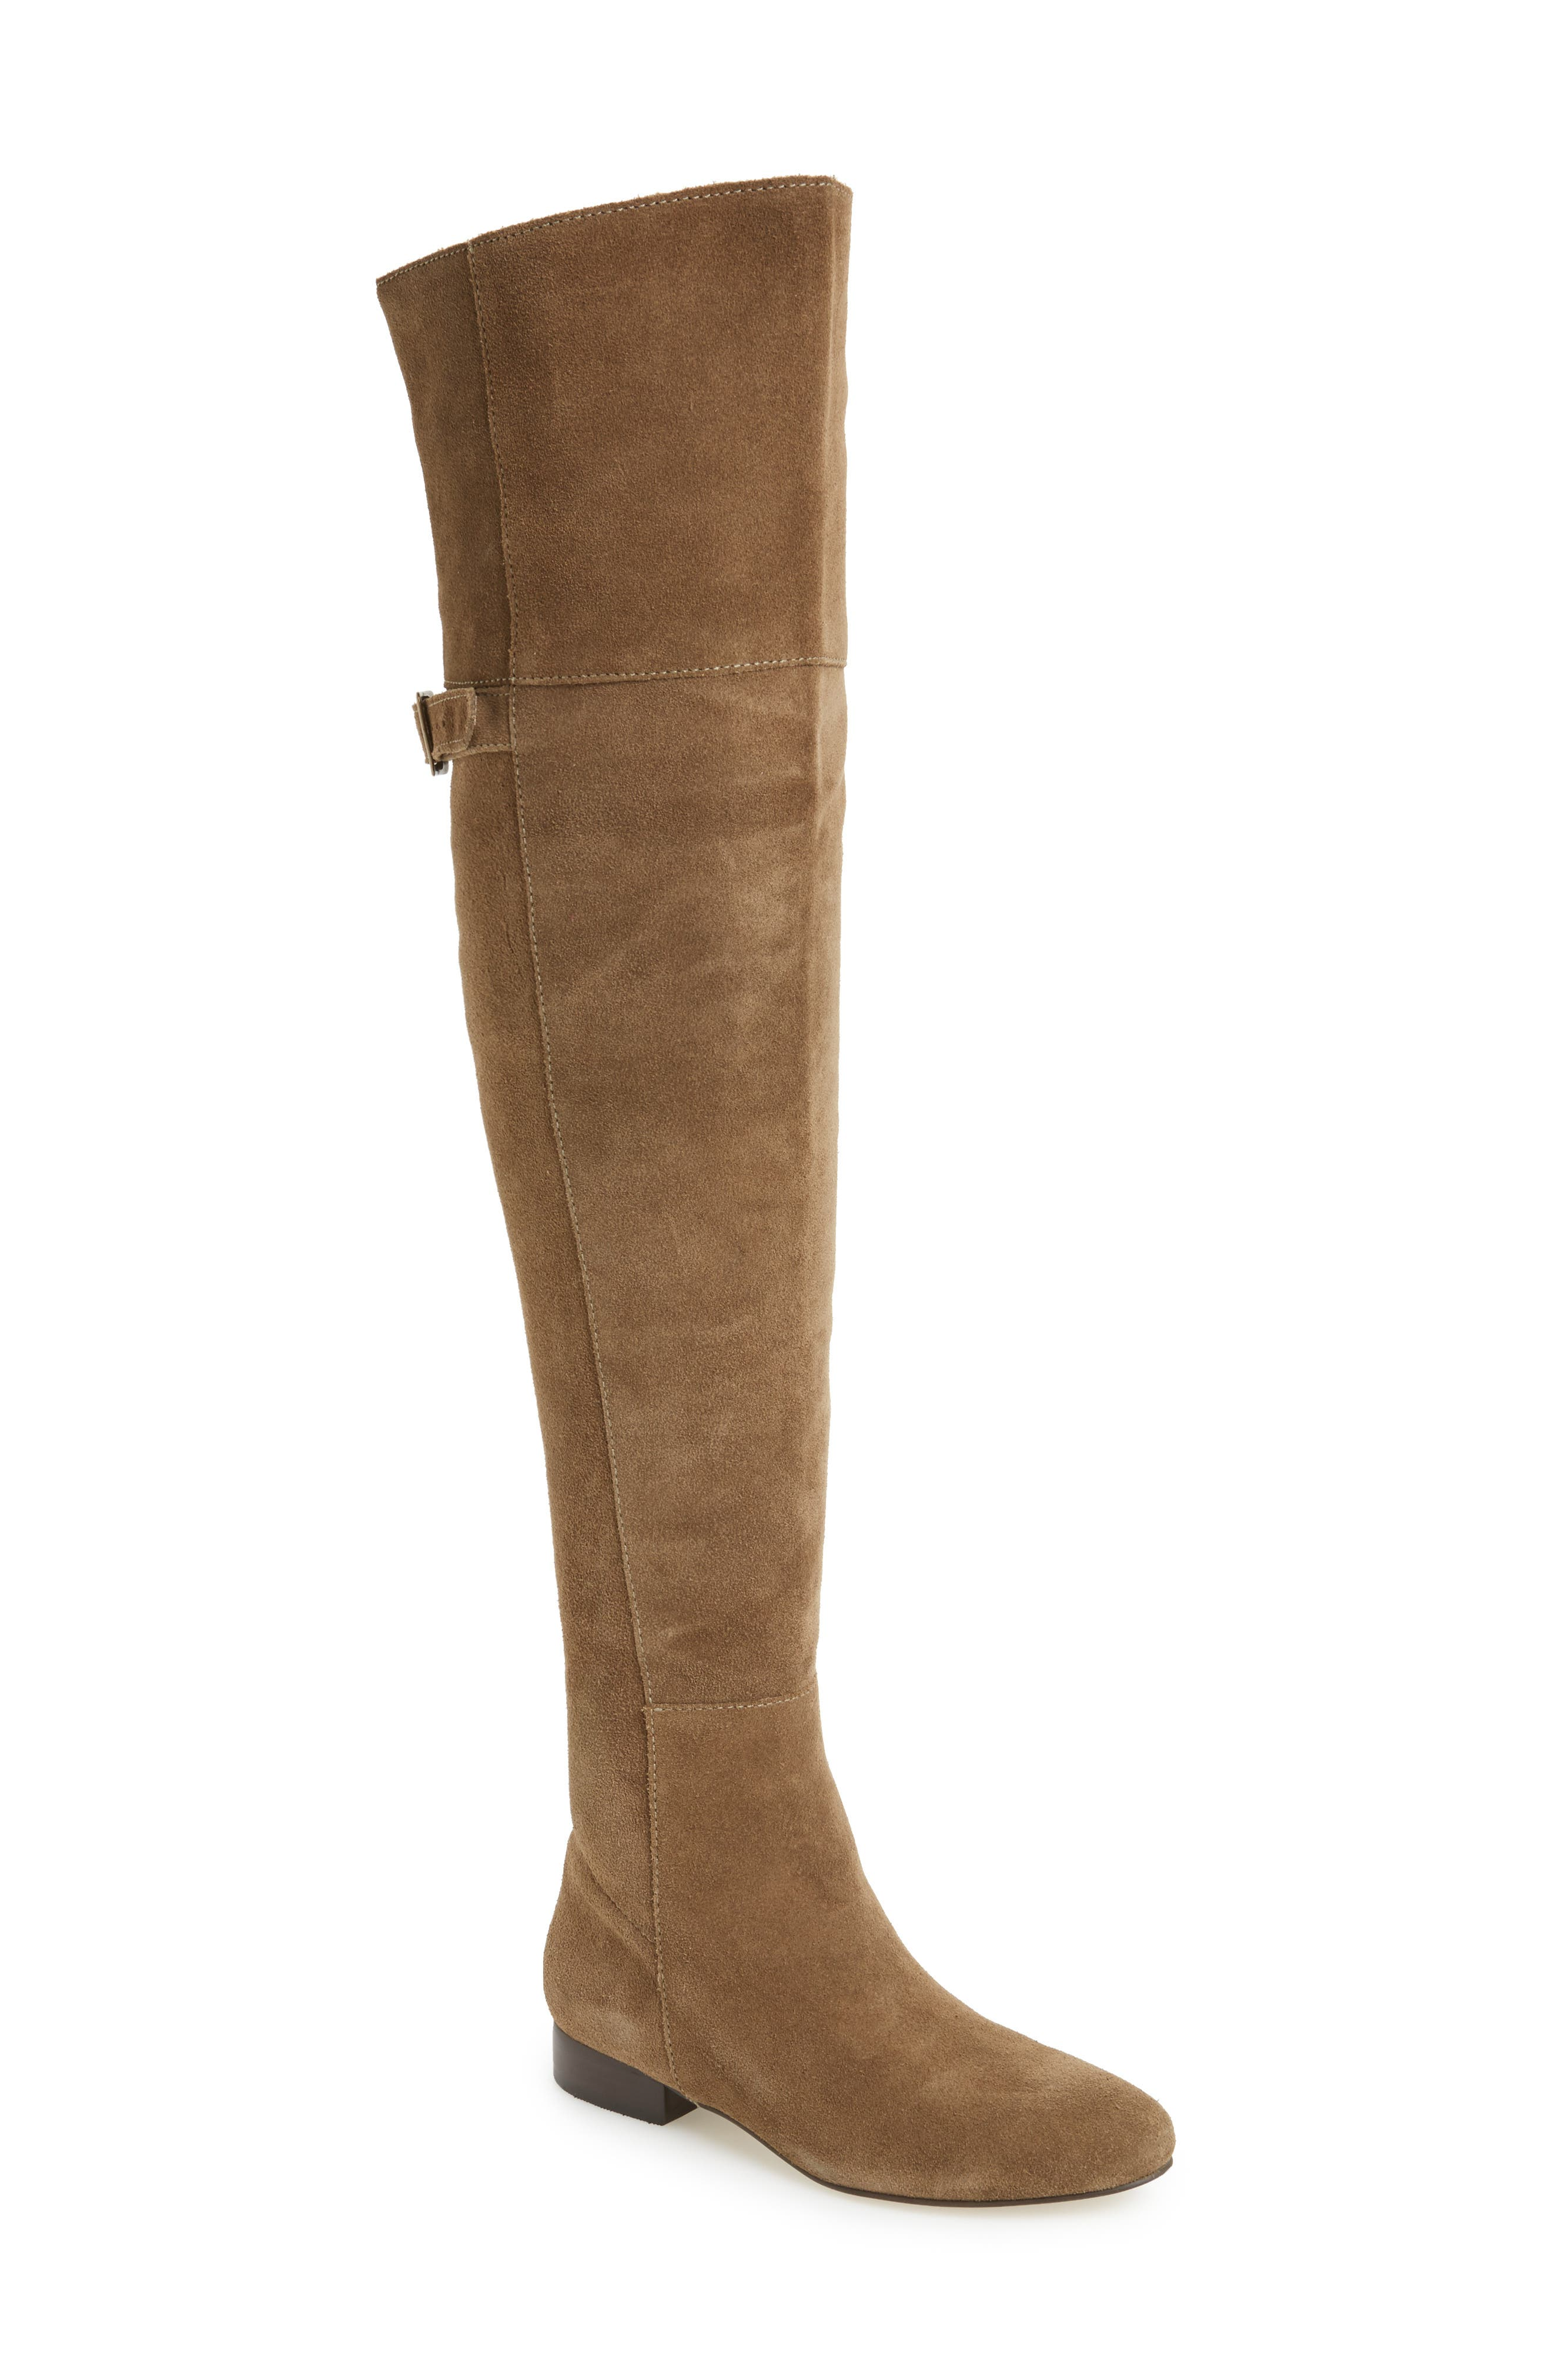 Alternate Image 1 Selected - Matisse x Amuse Society Ashley Over the Knee Boot (Women)